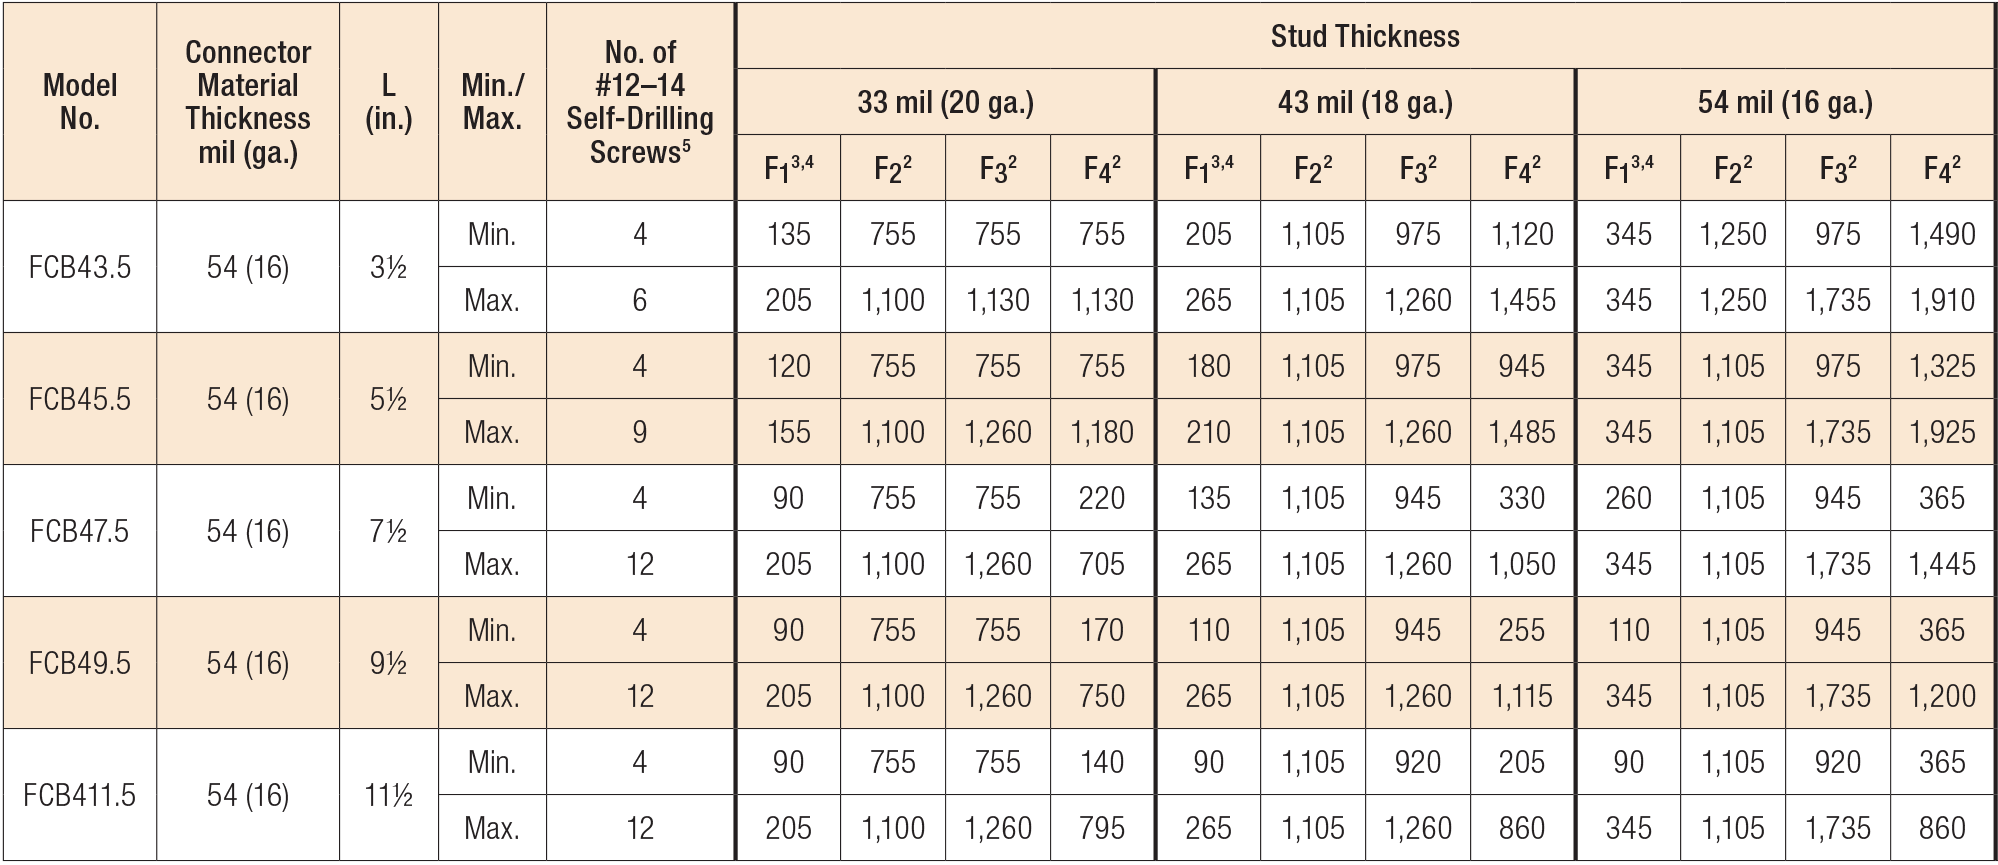 Load Table - FCB Allowable Connector Loads (lb.)